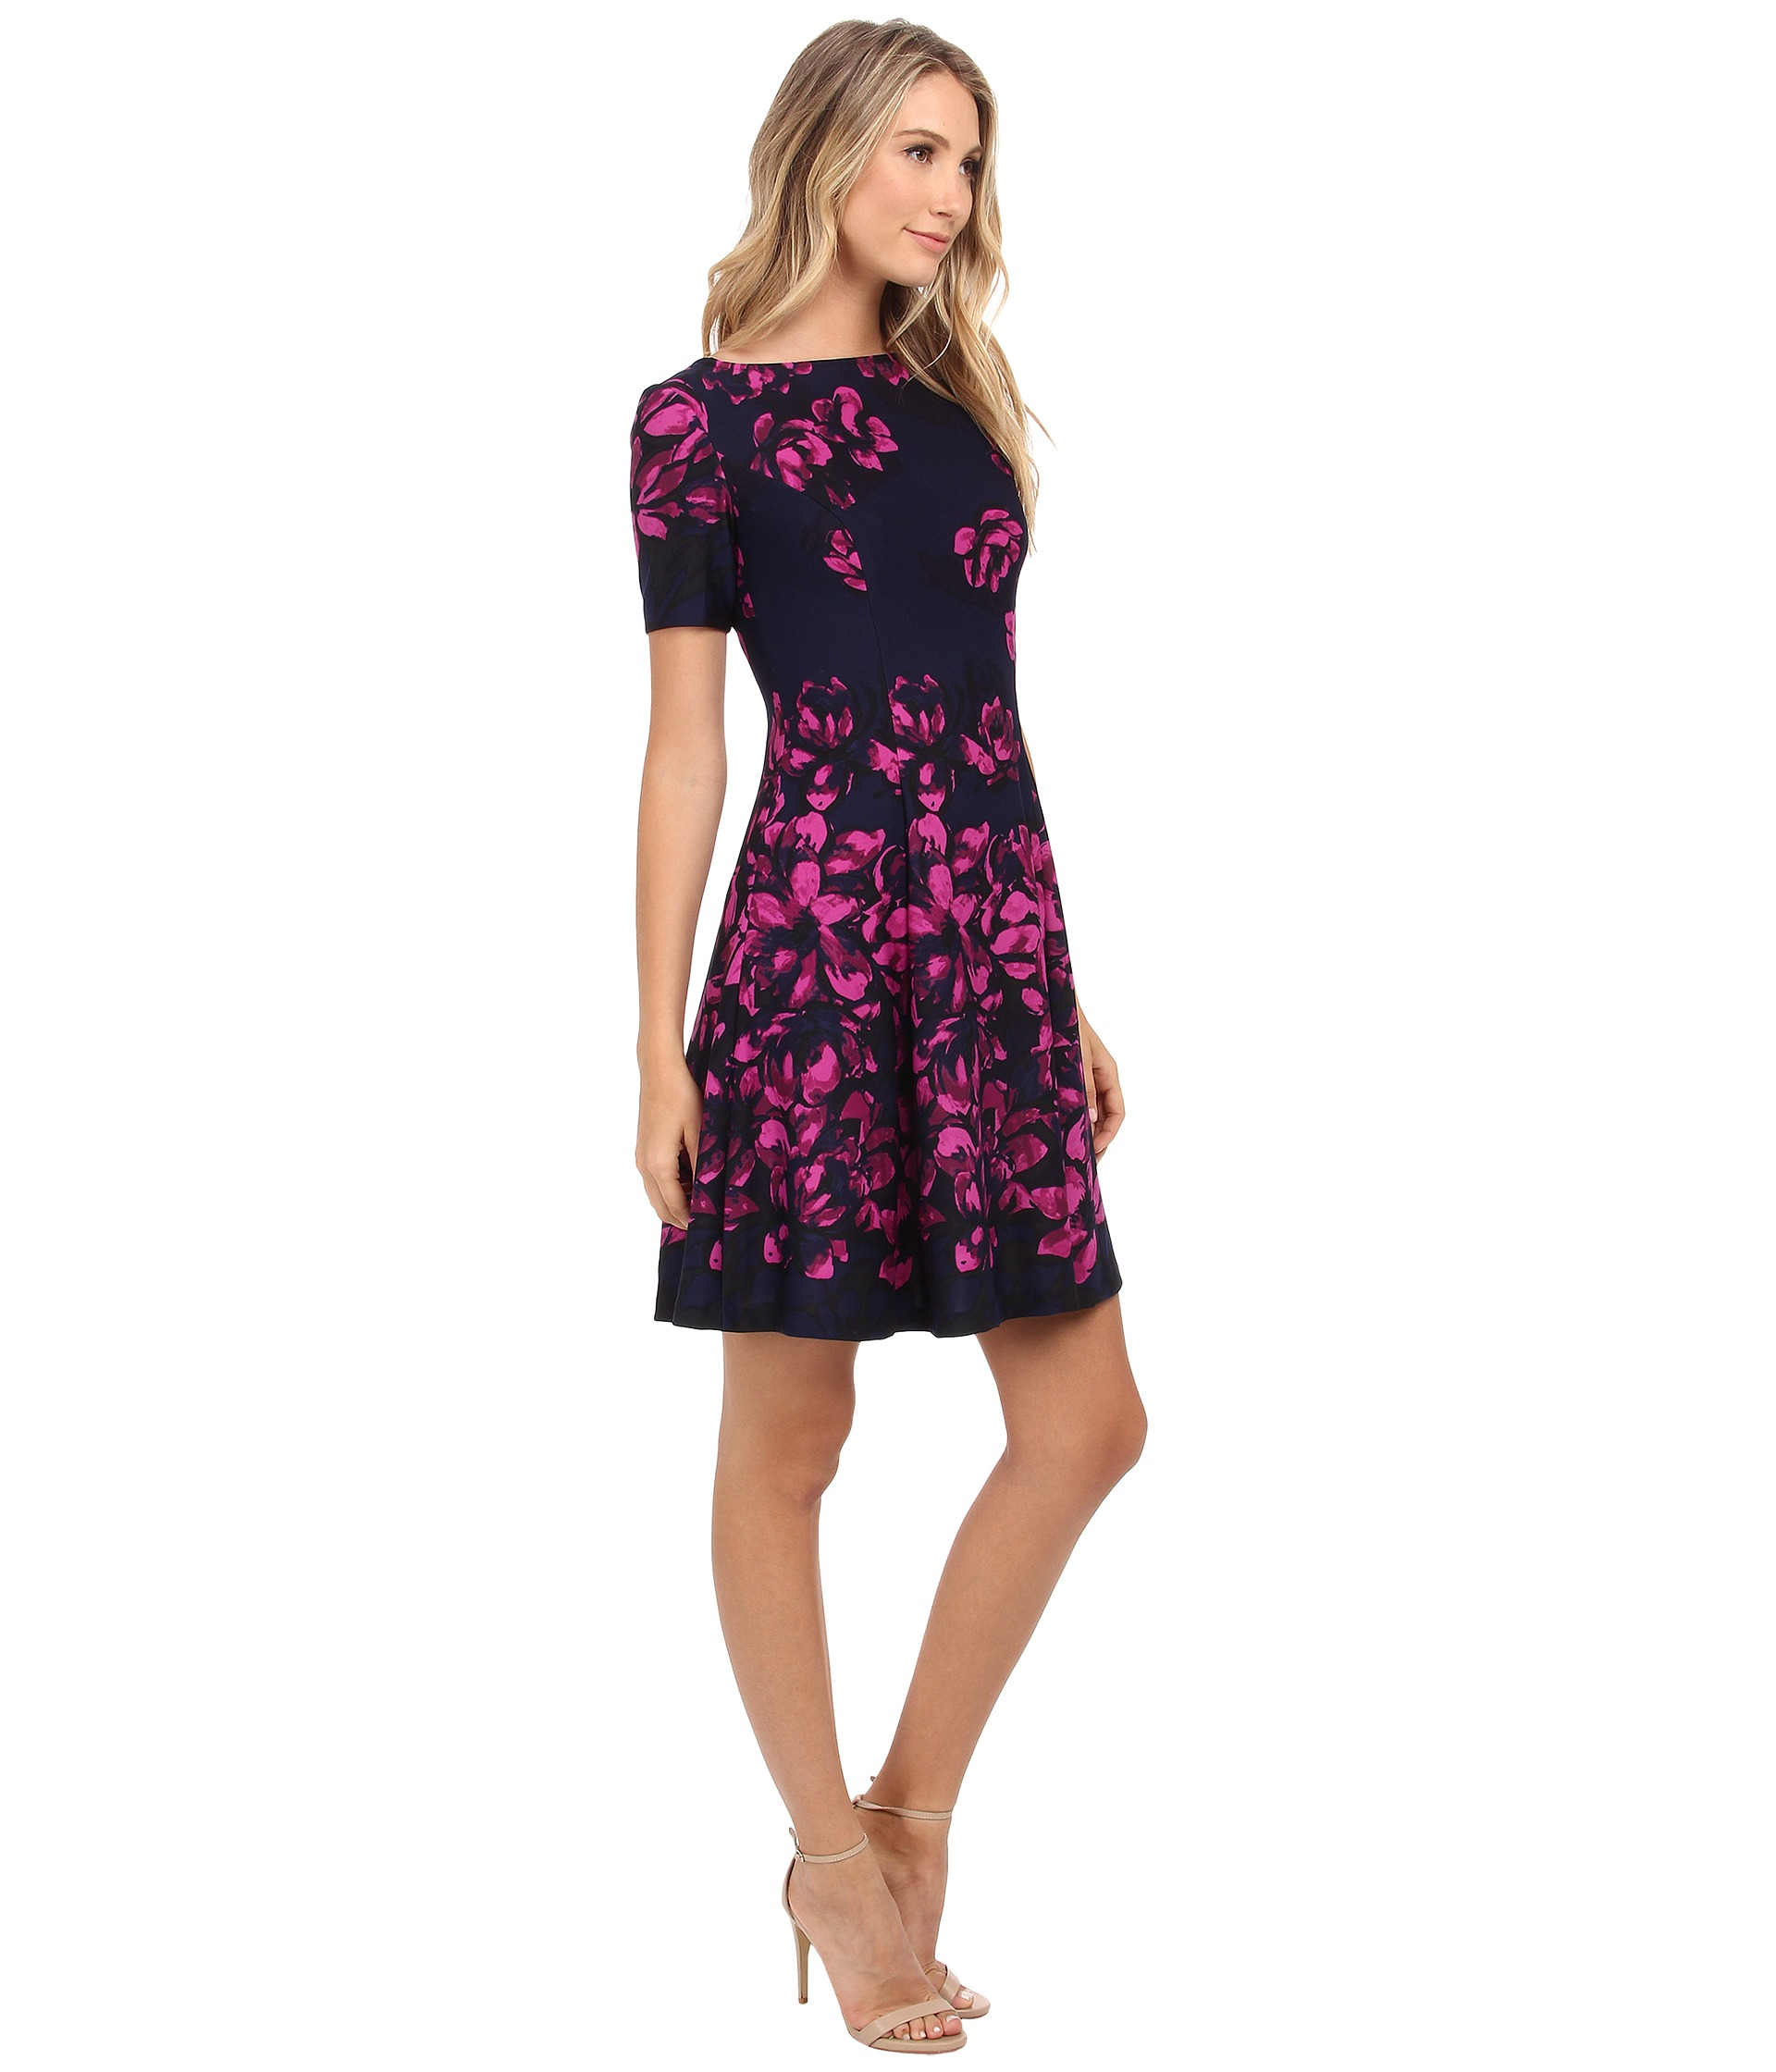 1945cc5a37 Lyst - Donna Morgan Short Sleeve Floral Printed Scuba Fit And Flare ...